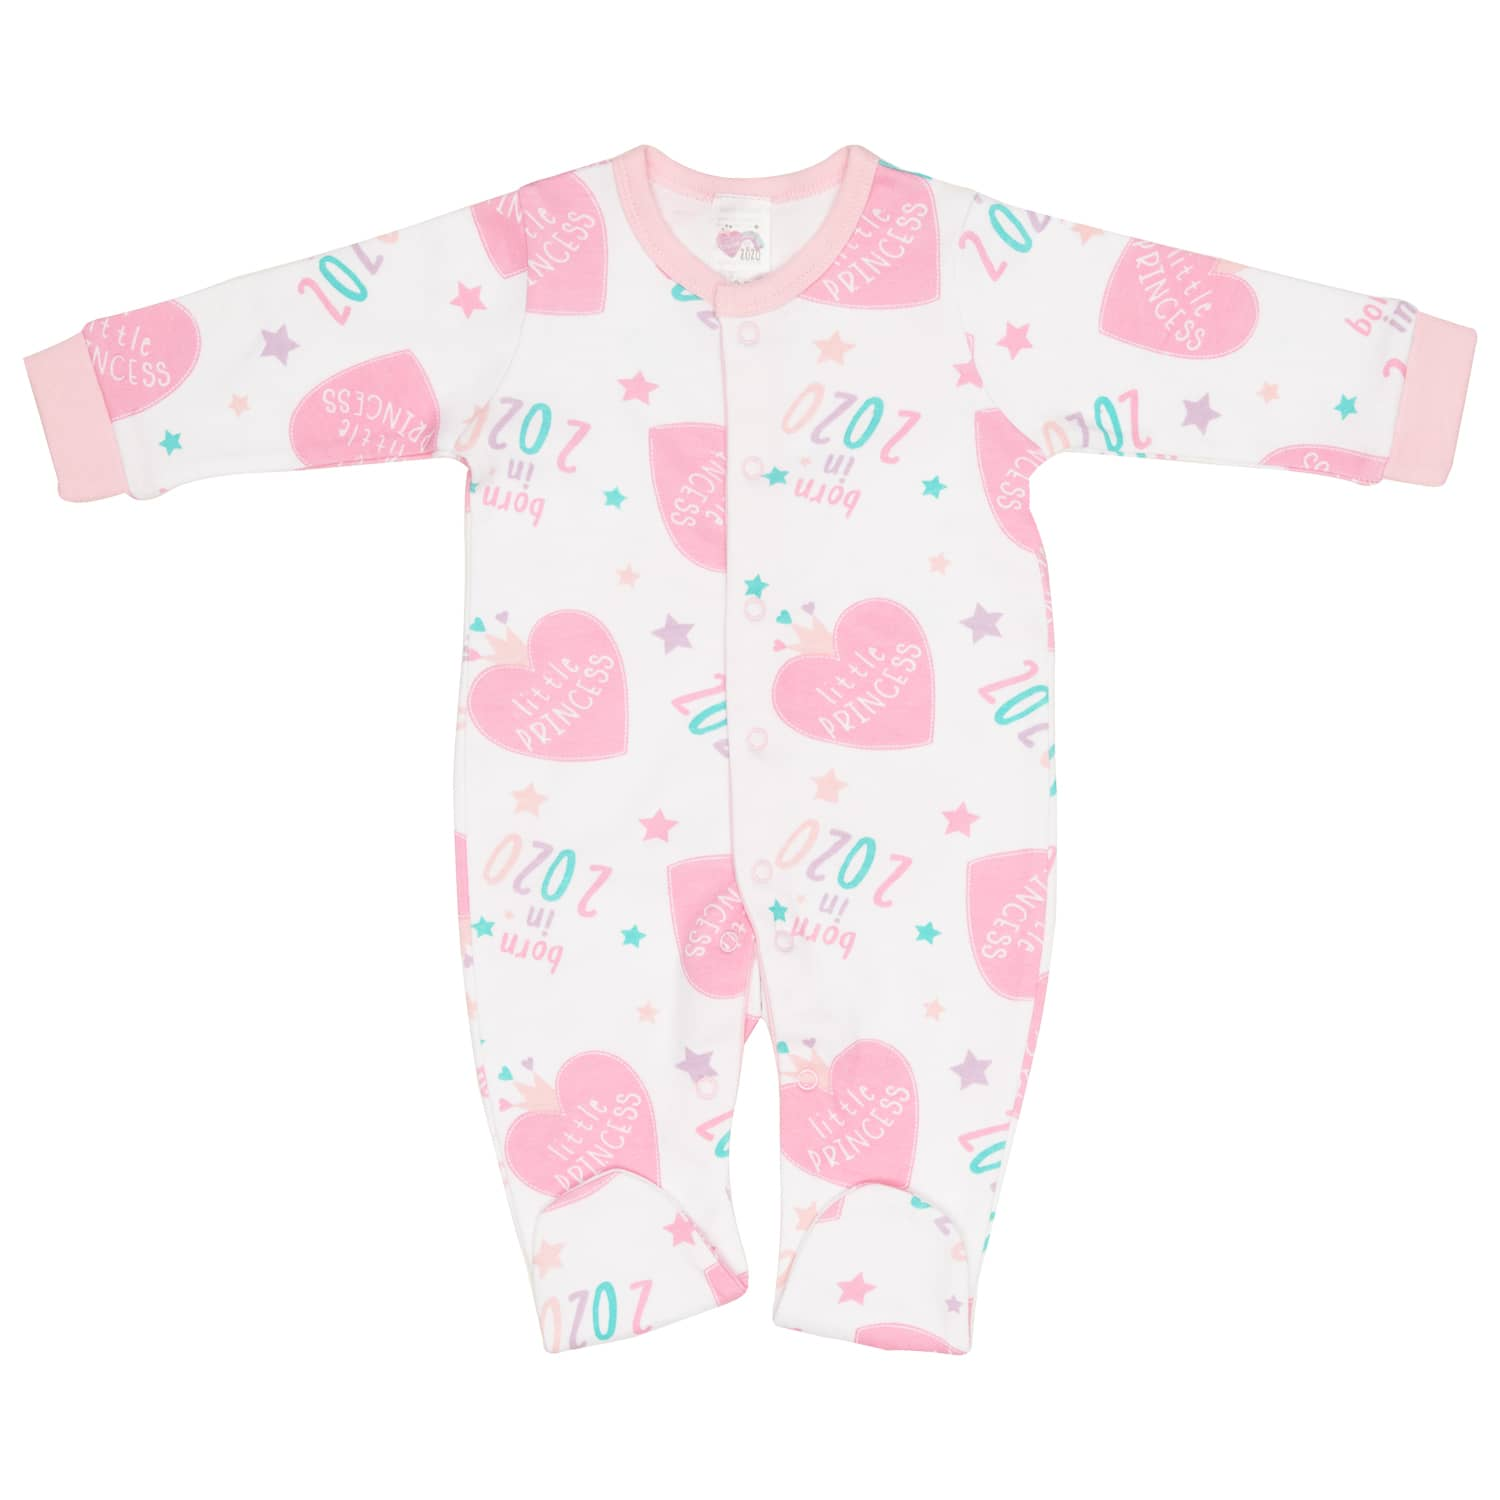 Born in 2020 Baby 5pc Set - Little Princess   Baby ...